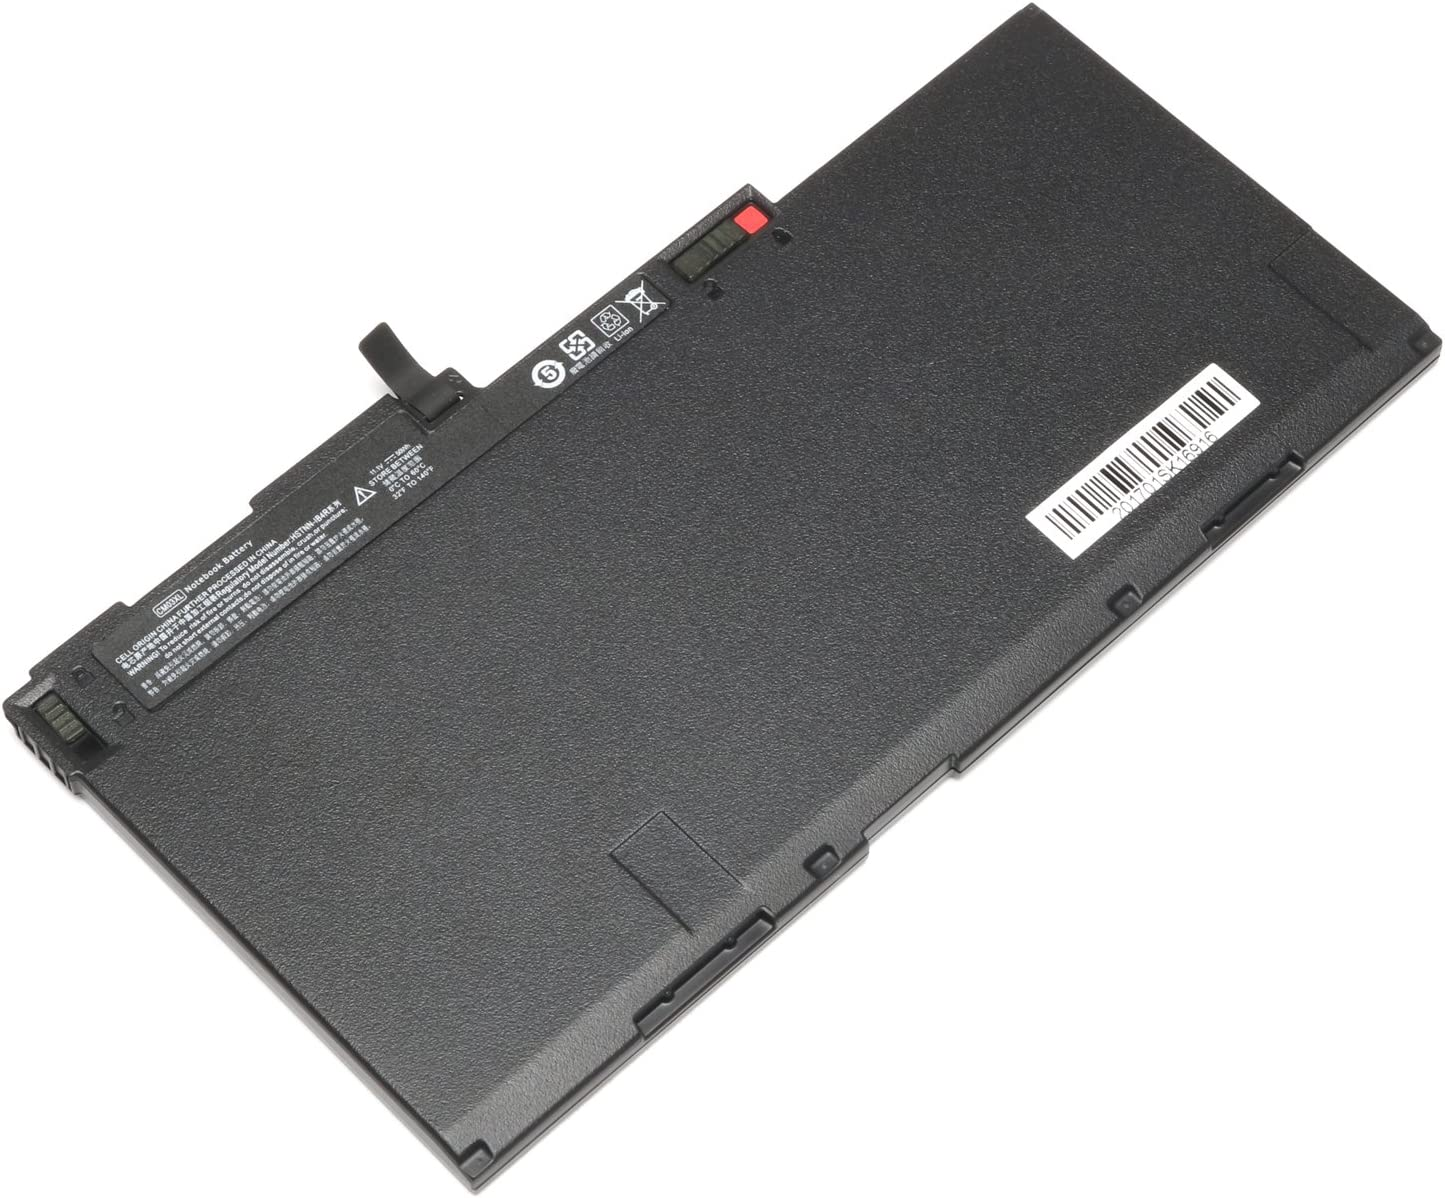 11.1V 50Wh CM03XL Notebook Battery Replace for HP EliteBook 840 G1 850 845 840 755 750 745 740 G1 G2 Series ZBook 14 G2 CO06XL 717376-001 716723-271 CM03050XL-PL